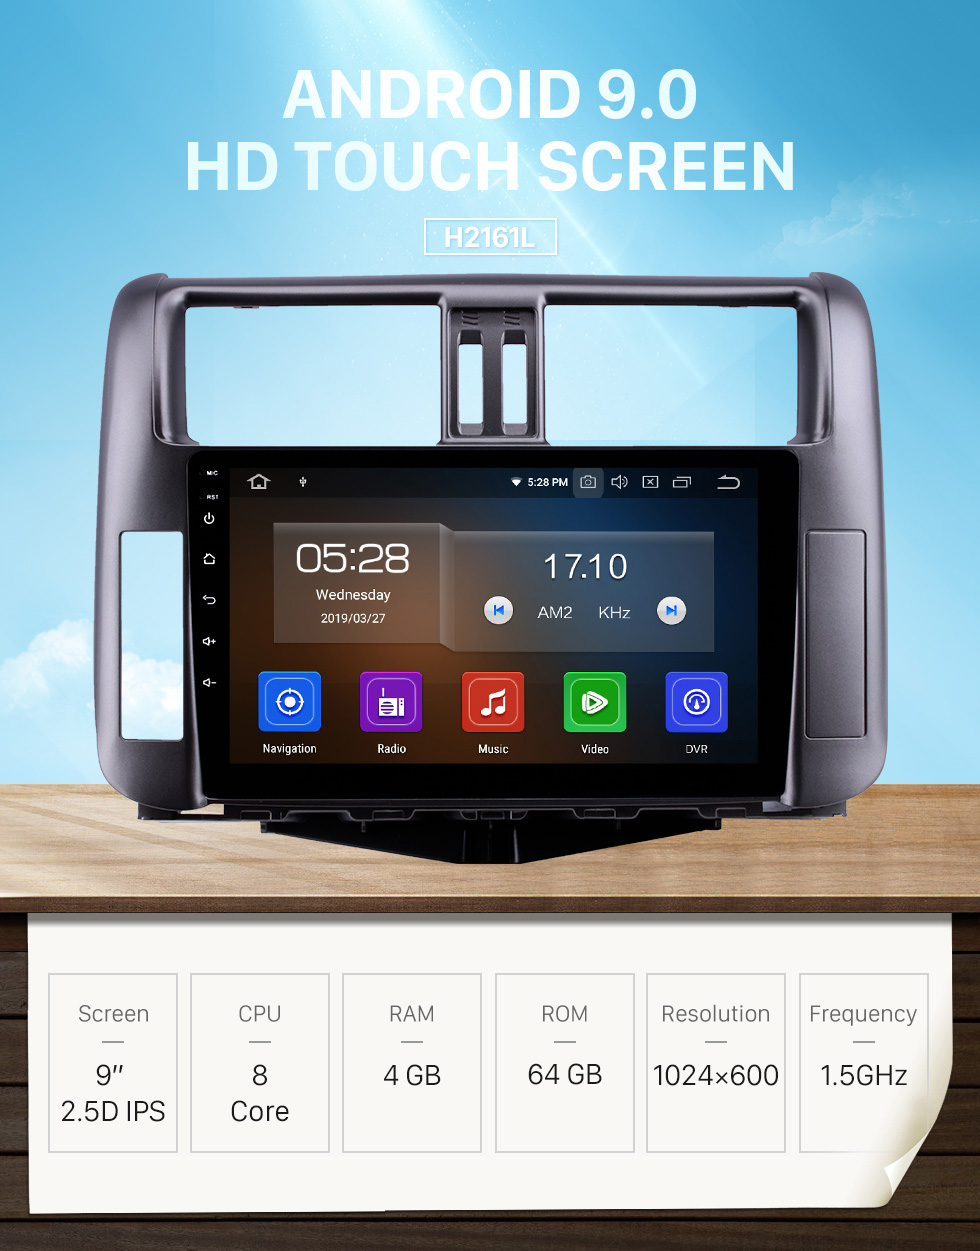 Seicane OEM 9 inch Android 9.0 HD Touchscreen Bluetooth Radio for 2010-2013 Toyota Prado 150 with GPS Navigation USB FM auto stereo Wifi AUX support DVR TPMS Backup Camera OBD2 SWC